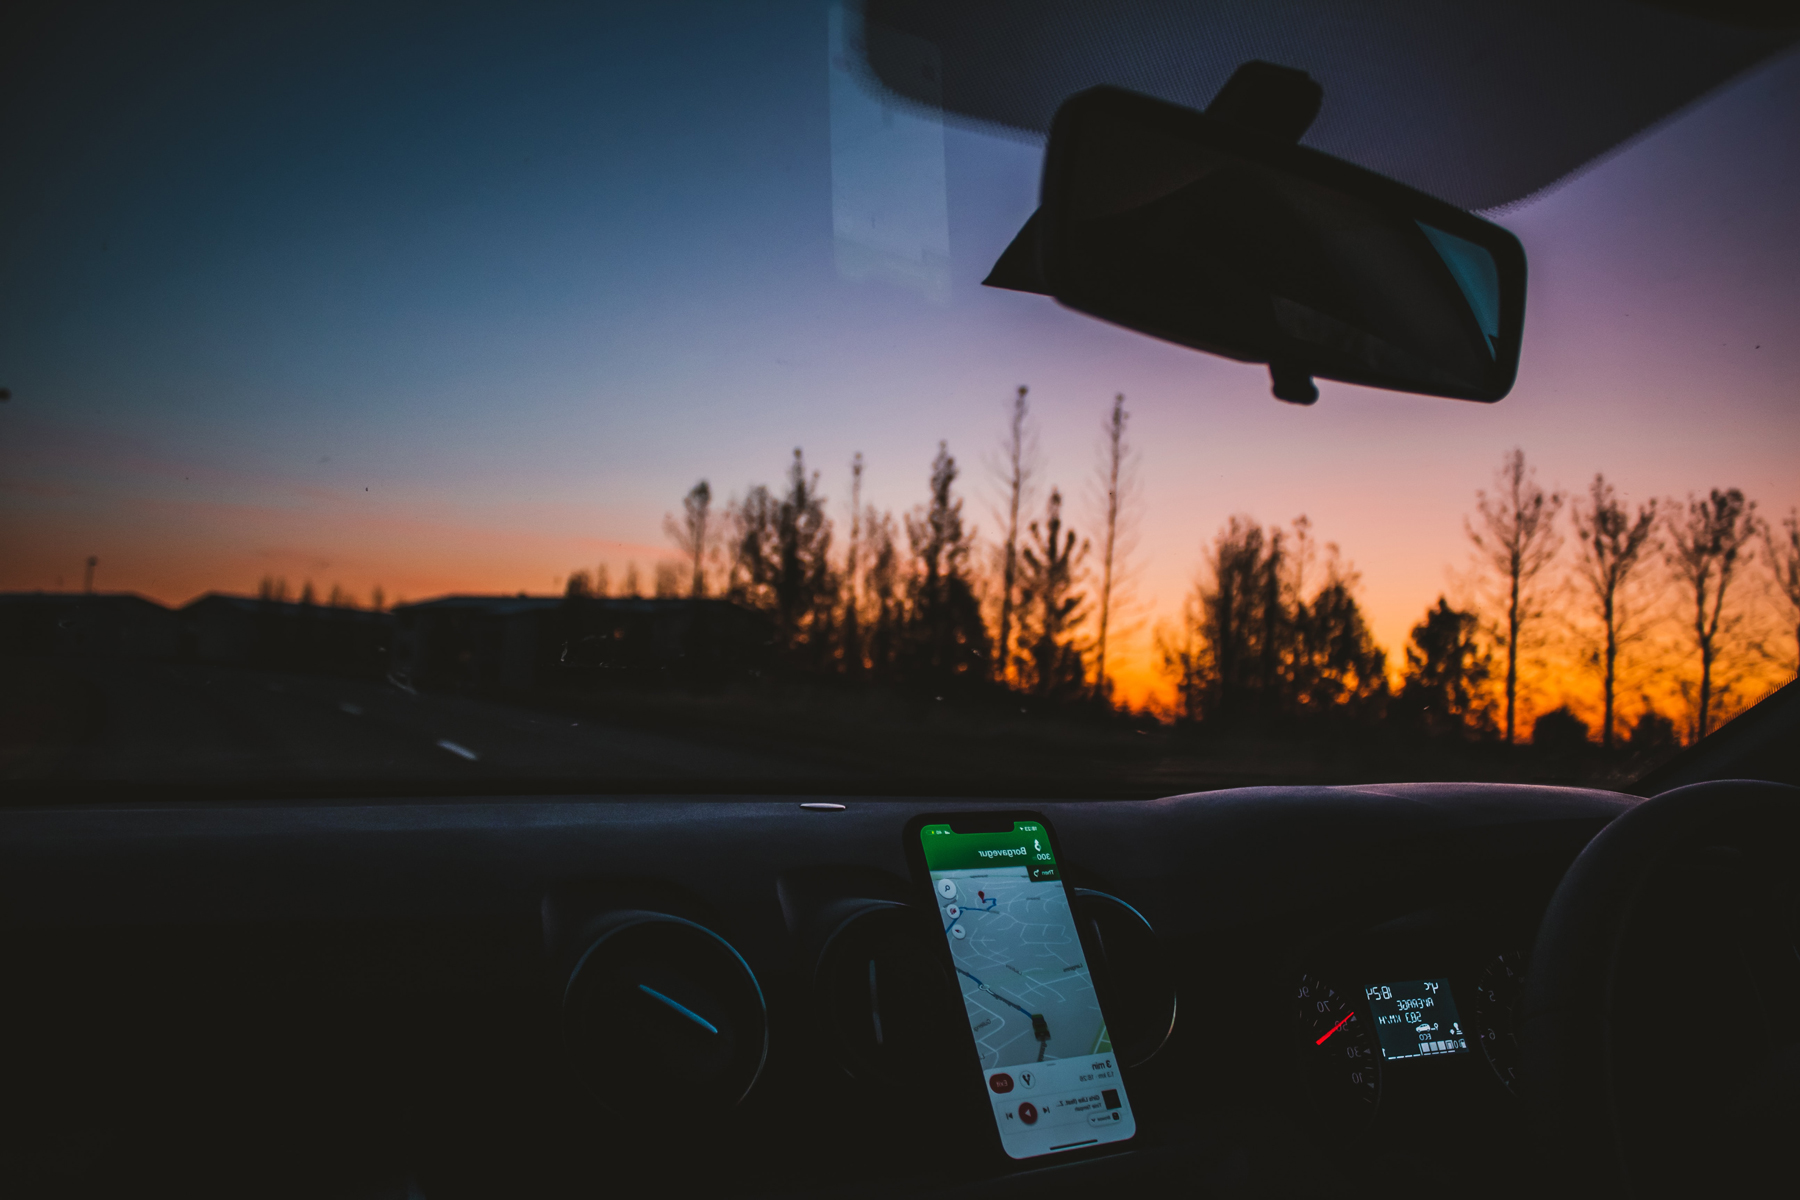 The interior of a car with the driving using Google maps for navigation at sunset